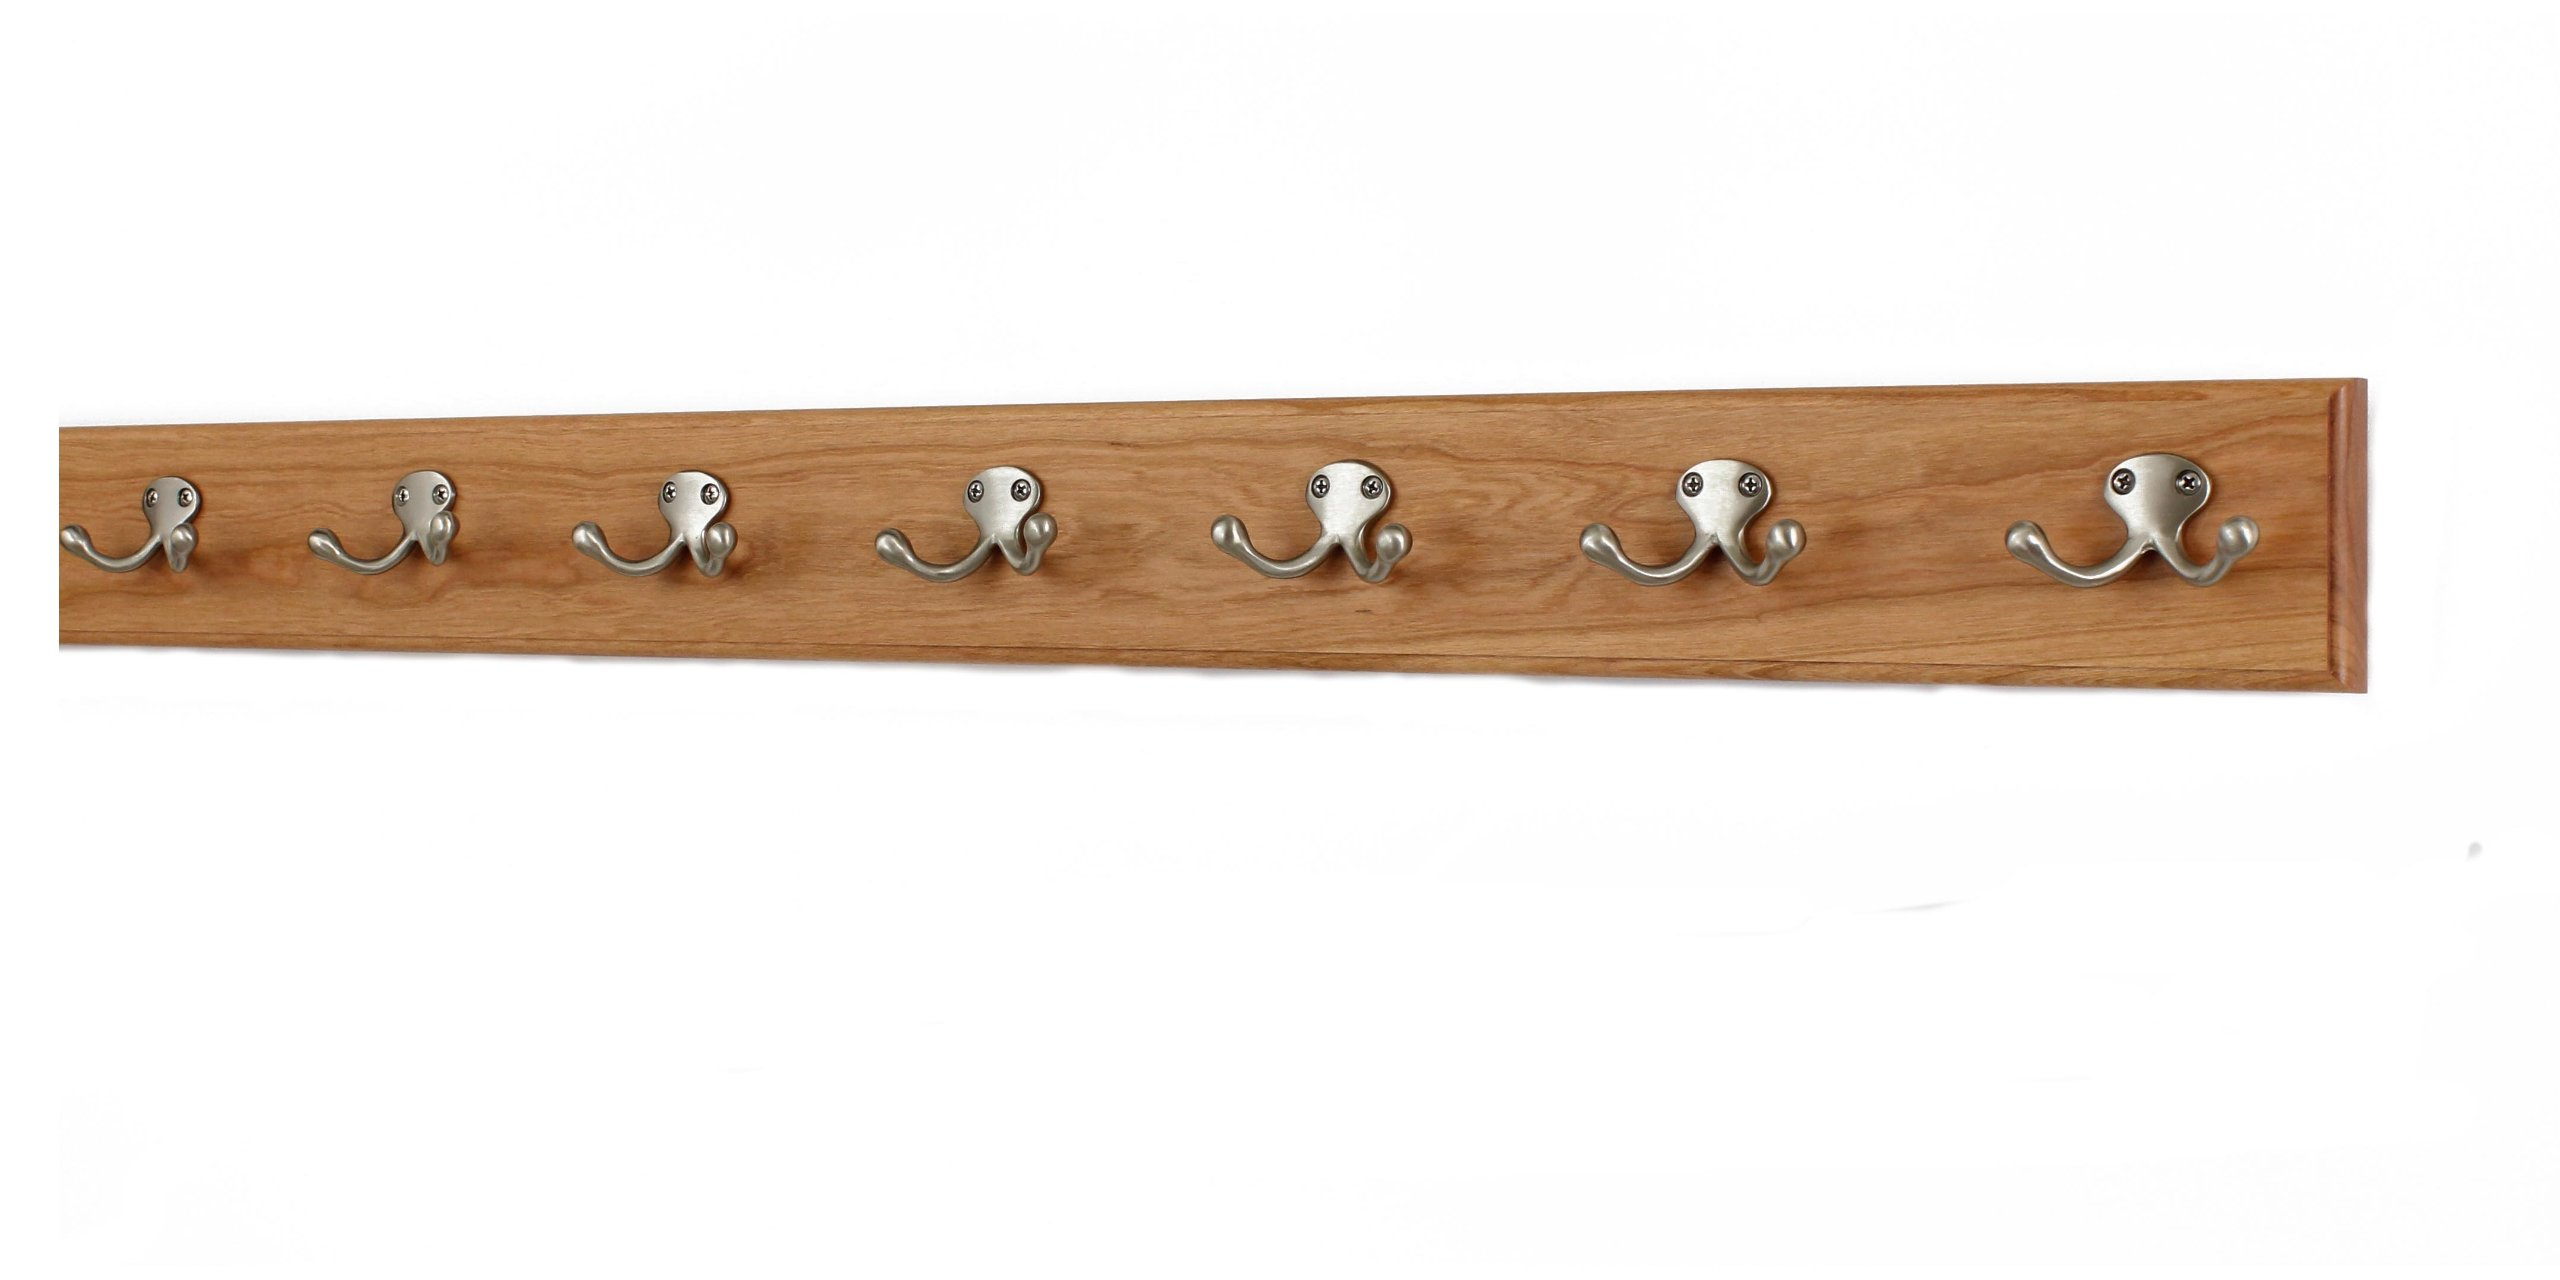 Solid Cherry Wall Mounted Coat Rack with Satin Nickel Double Style Coat Hooks - Made in the USA (Cherry, 36'' x 3.5'' with 7 hooks)